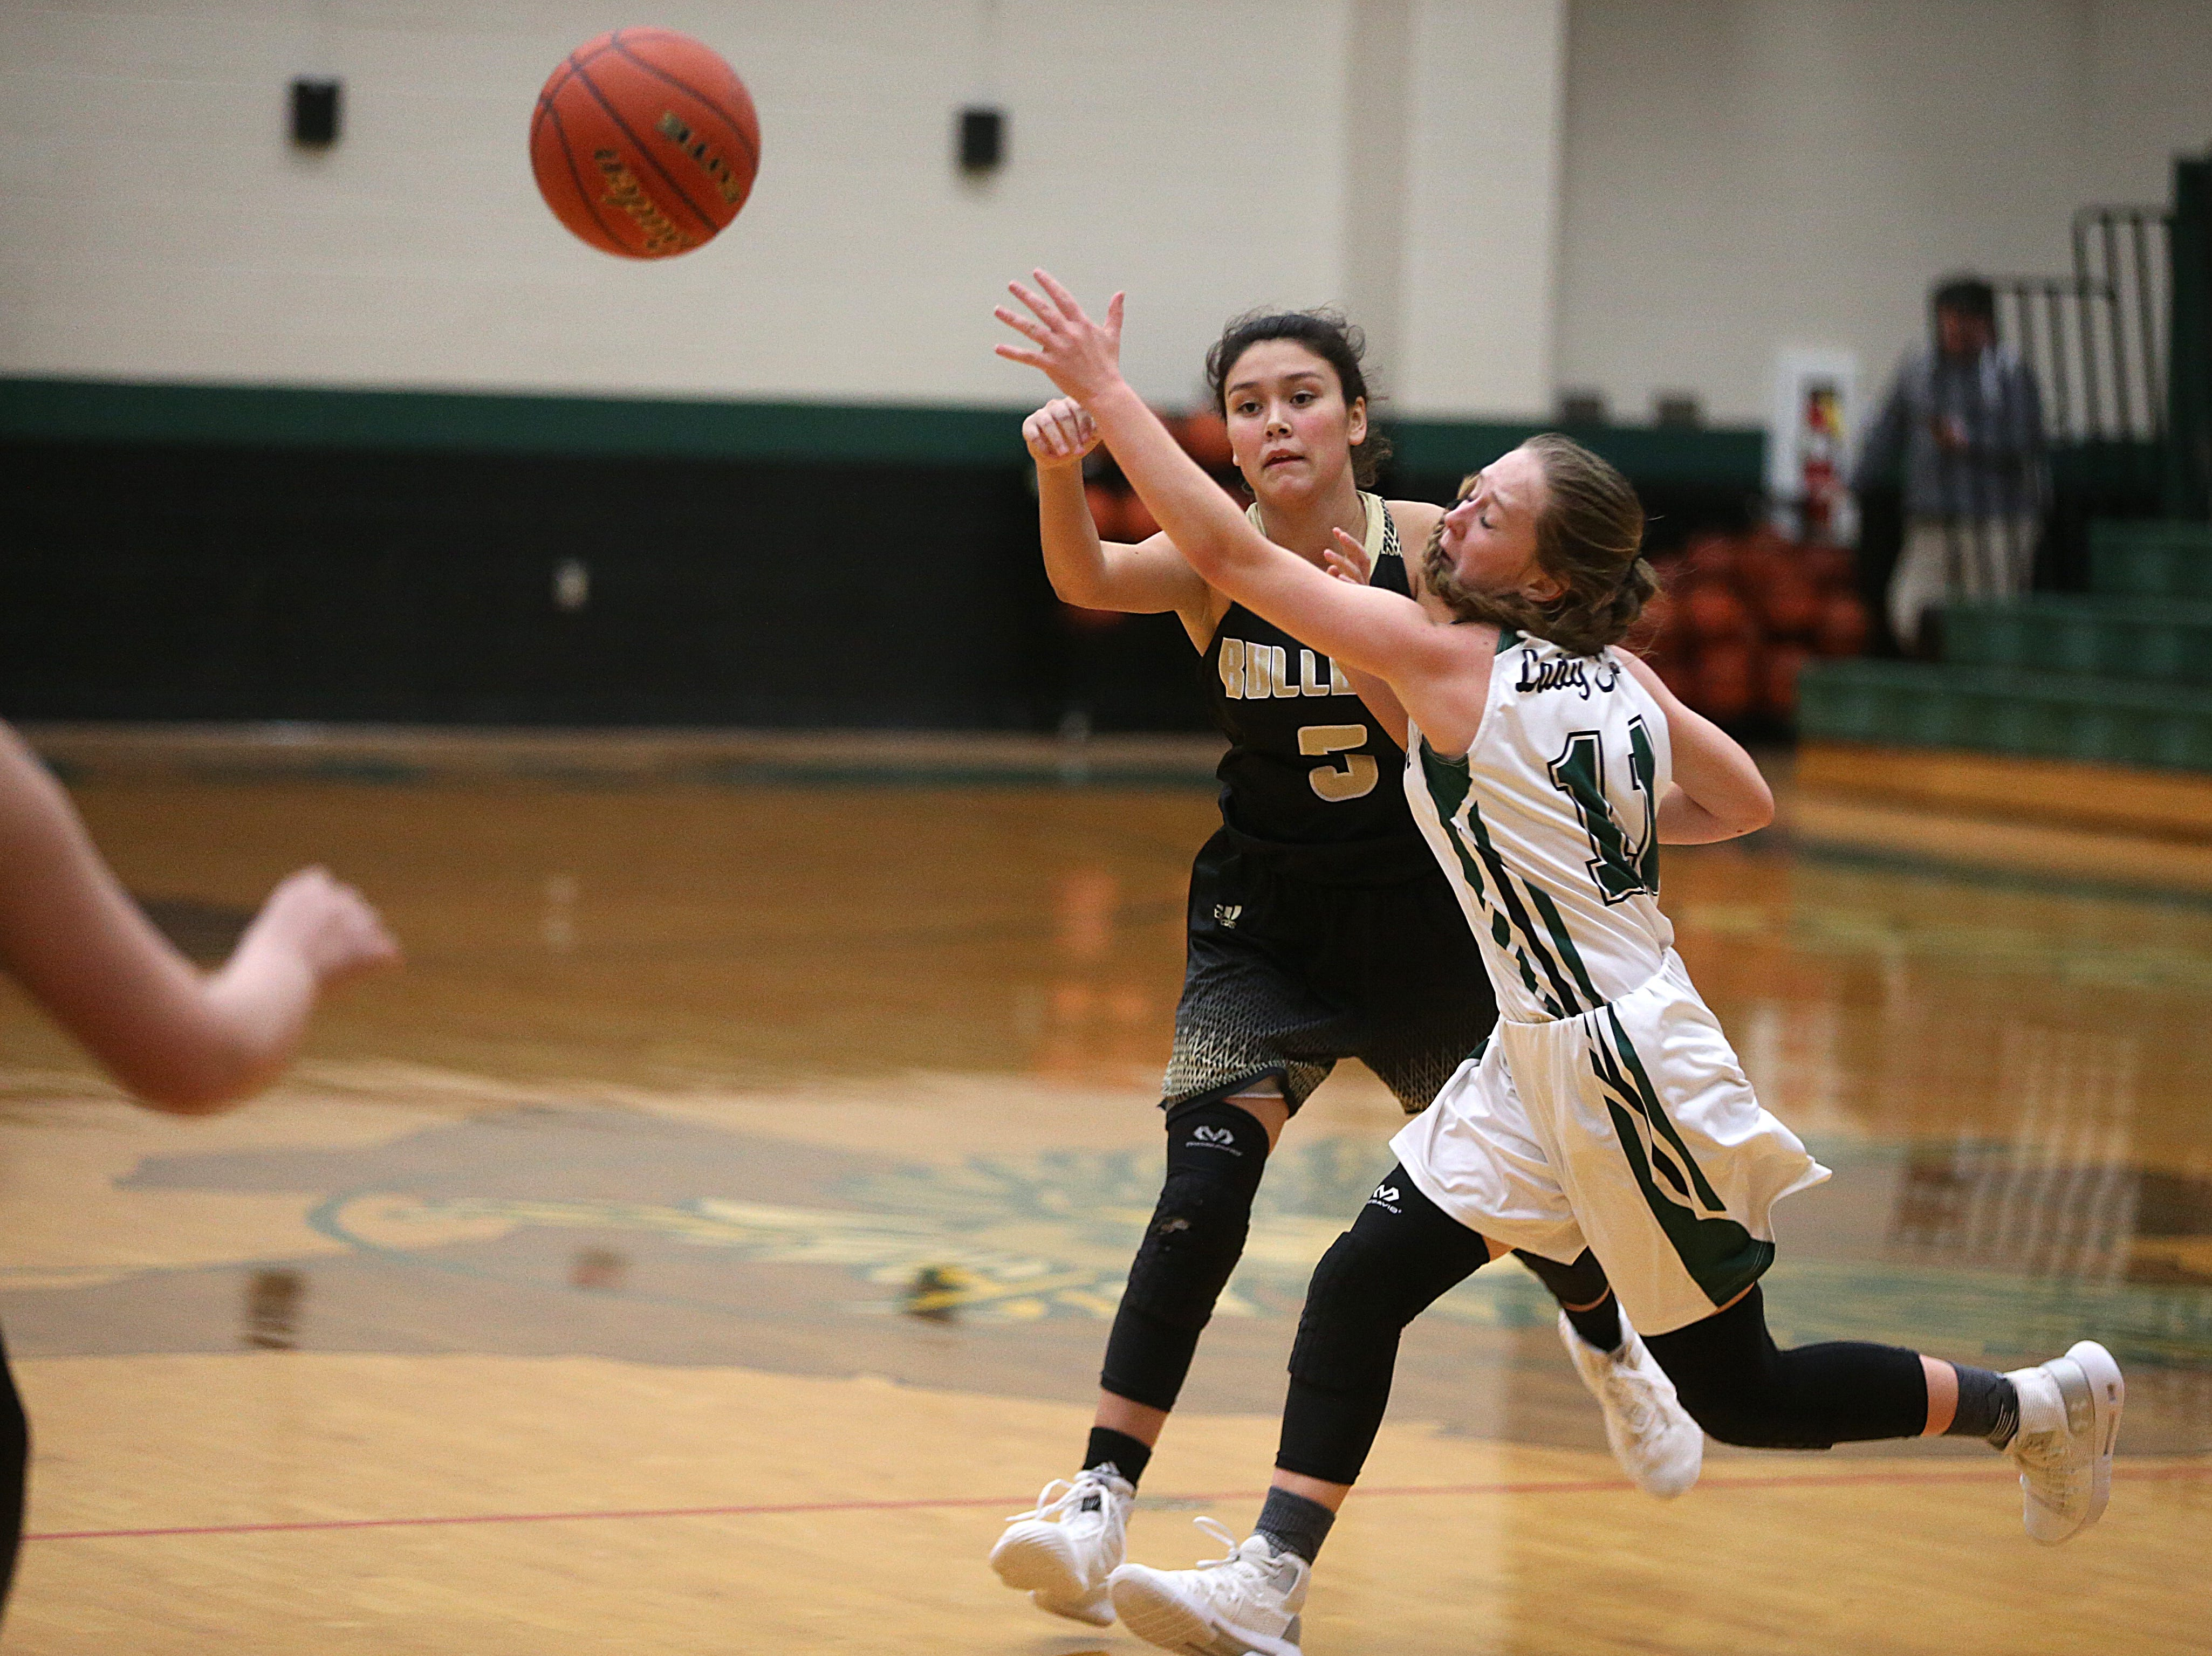 Brady's Nina Delafuente (#5) passes to a teammate as Grape Creek's Taigon Rivers (#11) tries to block Friday, Dec. 14, 2018 during their game in Grape Creek. Brady won 48 to 28.